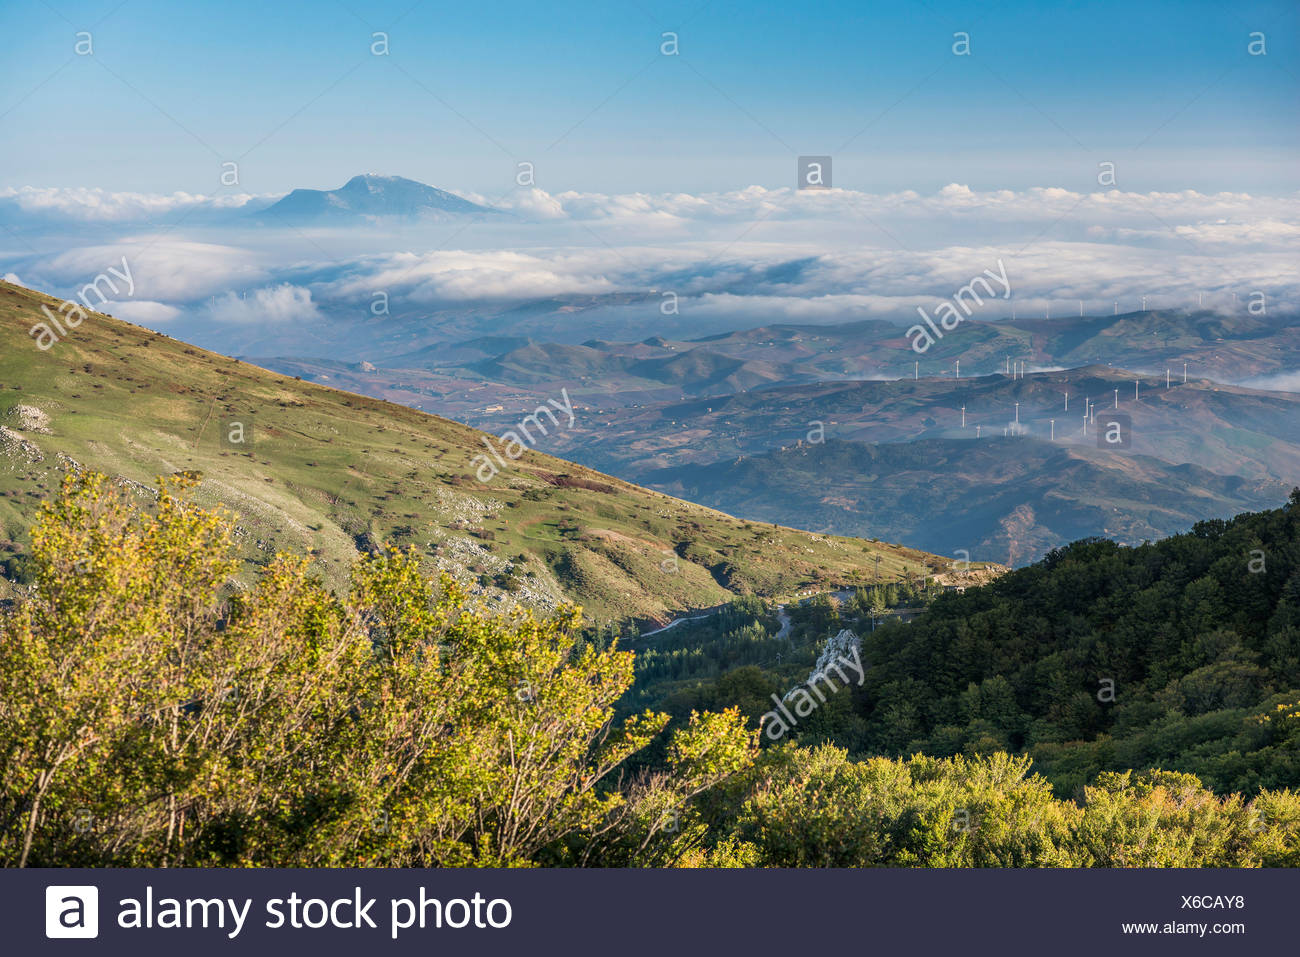 Parco delle Madonie, Madonie Regional Natural Park, in the autumn, with wafts of mist in the morning, near Petralia Sottana - Stock Image